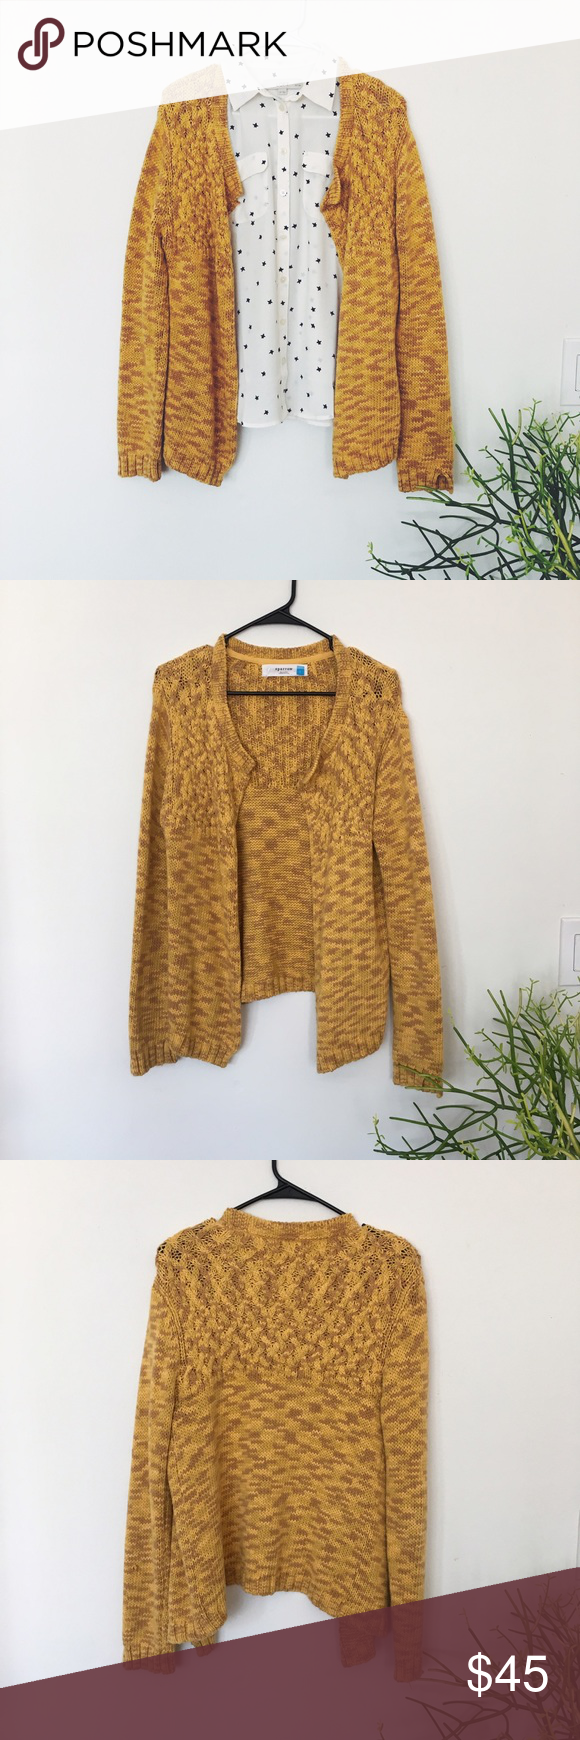 Sparrow Mustard Yellow Lodi Cardigan Amazing yellow and brown open cardigan sweater in a spacedye knit and various textures. It is cozy enough for fall but cheery enough for spring for year-round wear. Size is L, but I wear it slightly oversized as a S. In great condition. No wear that I can see. The star print button-up is for sale as well! Anthropologie Sweaters Cardigans